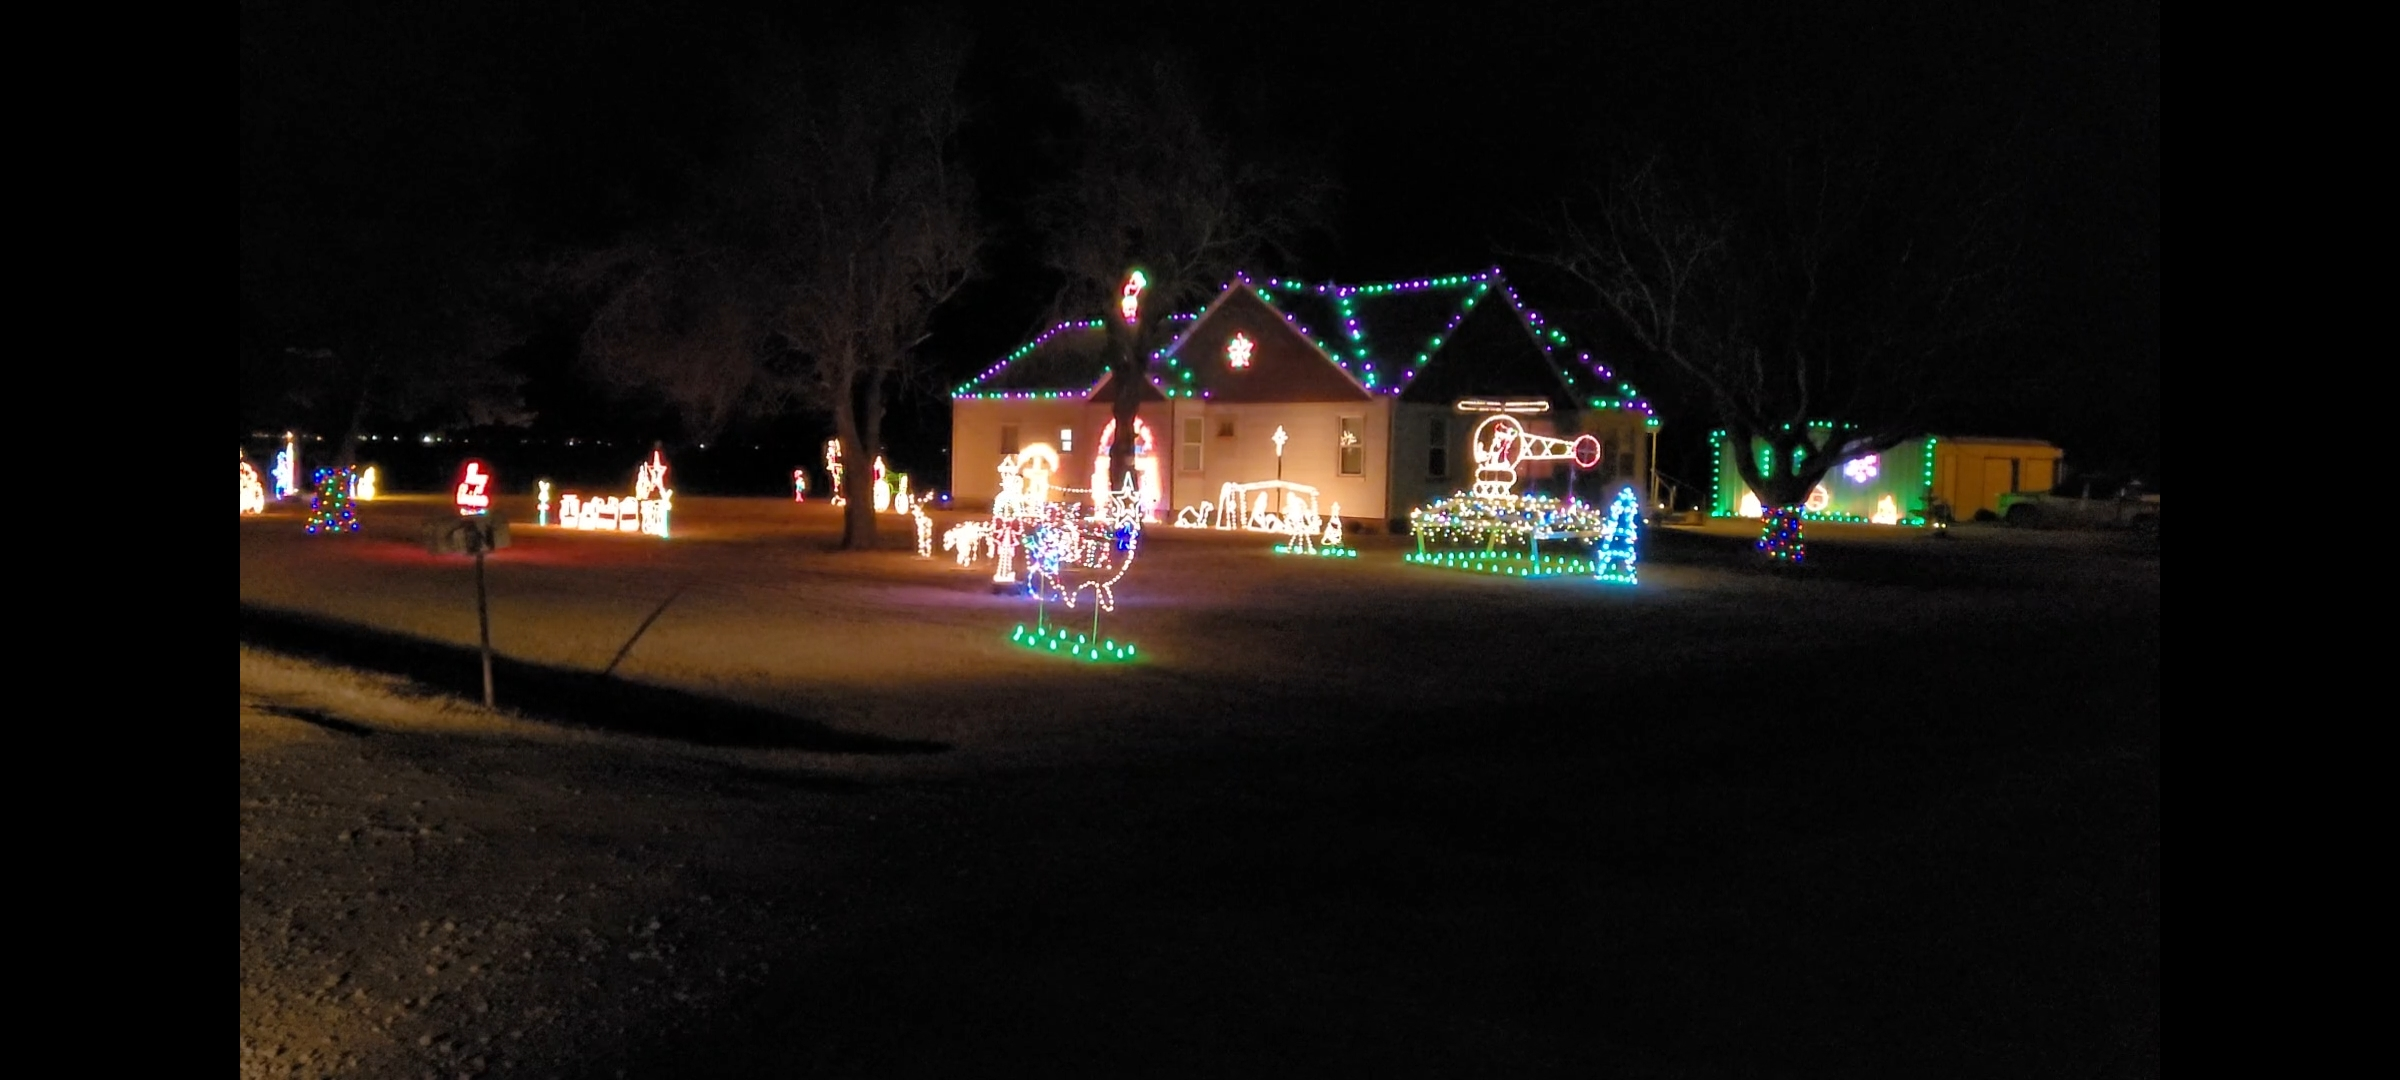 BRIGHT CHRISTMAS LIGHTS IN THE COUNTRY